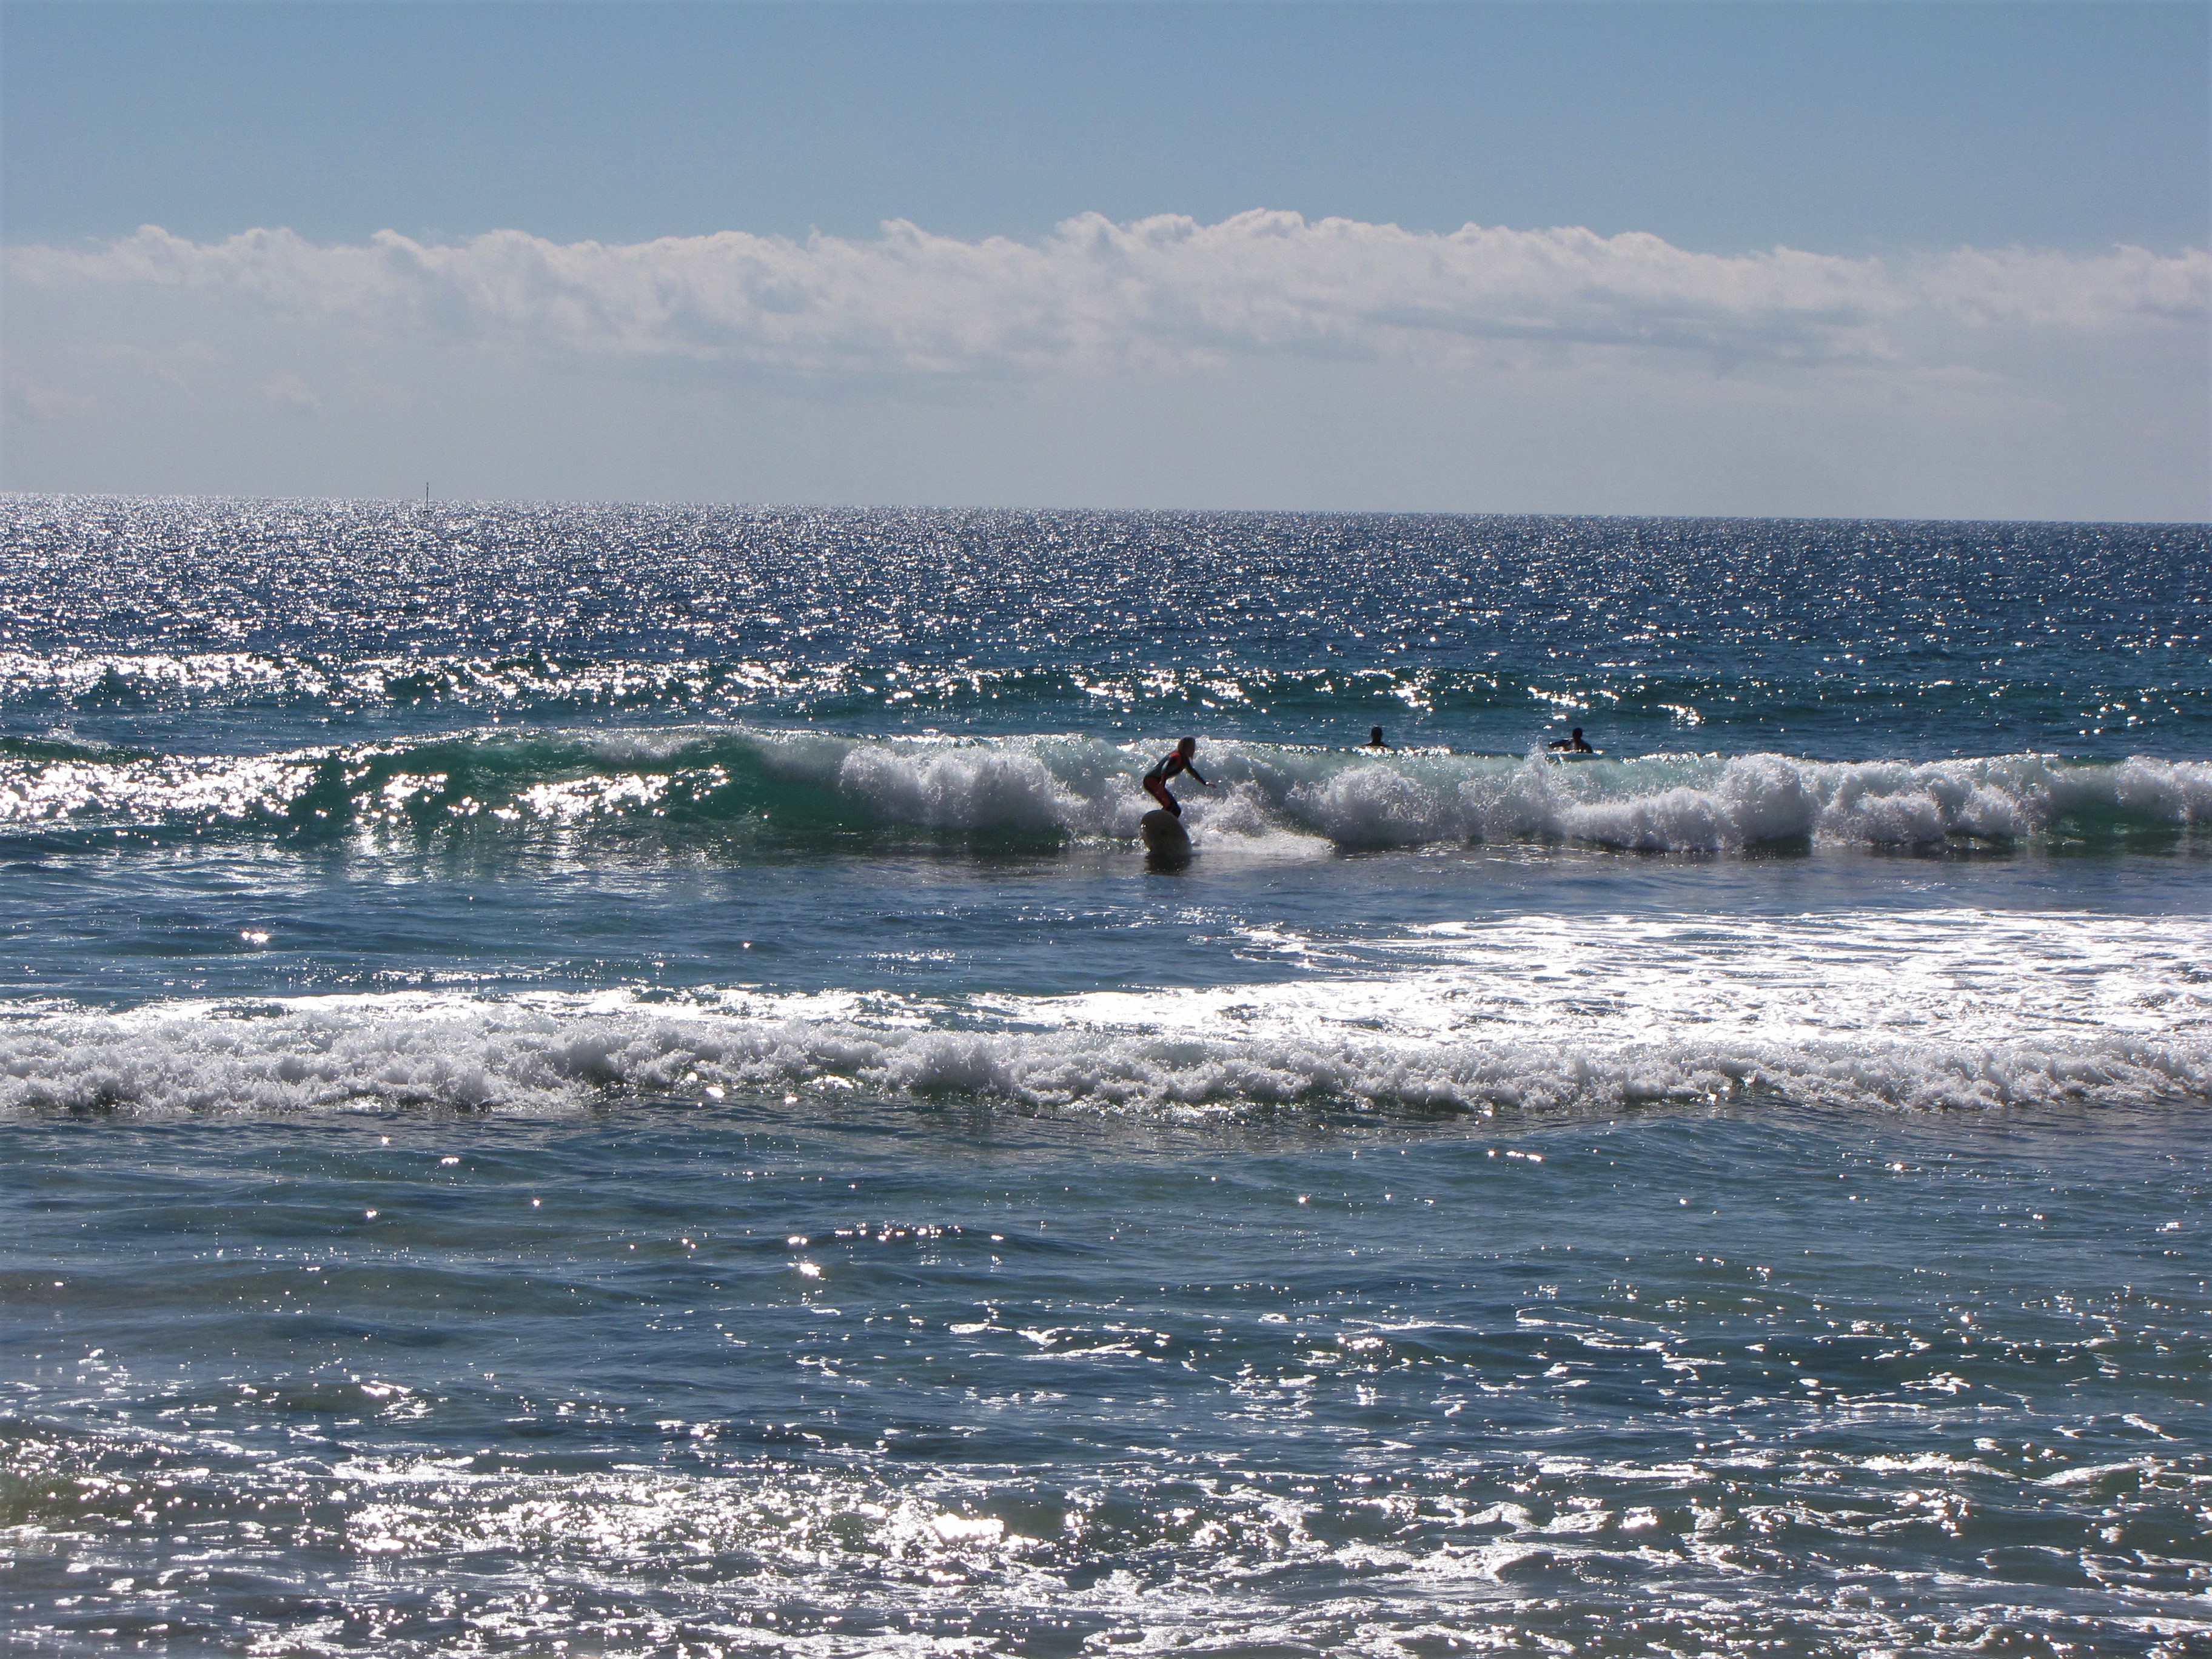 not a small wave at all! This could be you